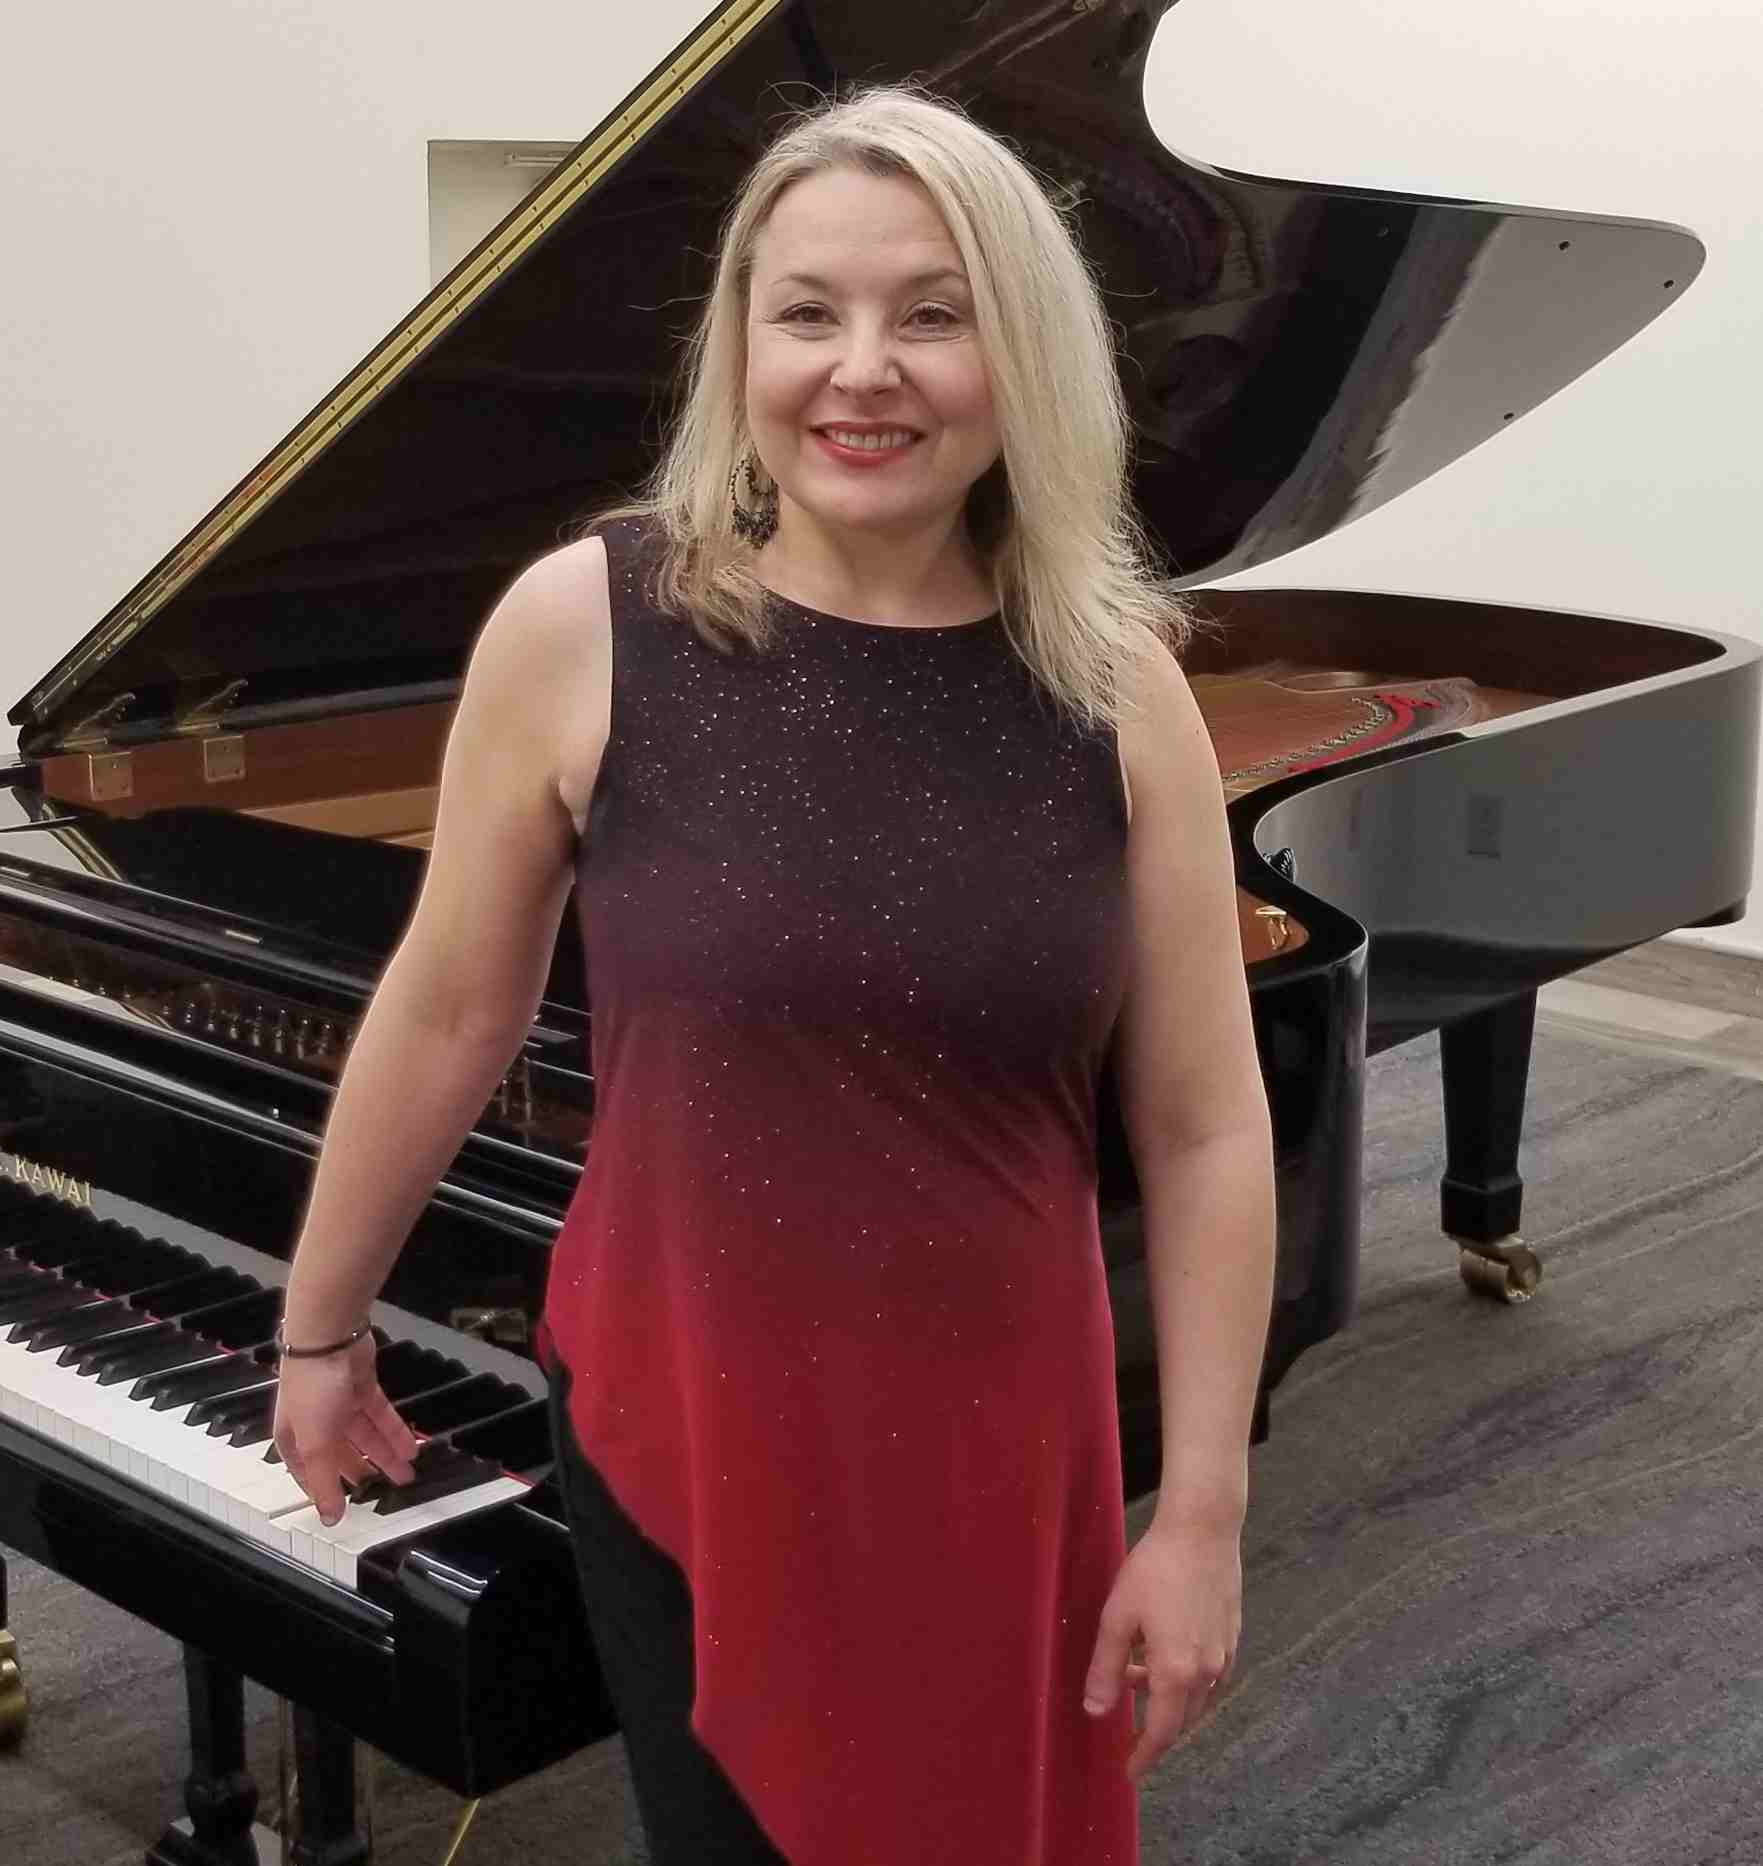 """I truly believe that the first stage of piano studies is the most important one in developing musicians. It's like planting a seed in the soil that could grow into a big tree or dry out and die in the ground."" ~ Anna Artobolevskaya"